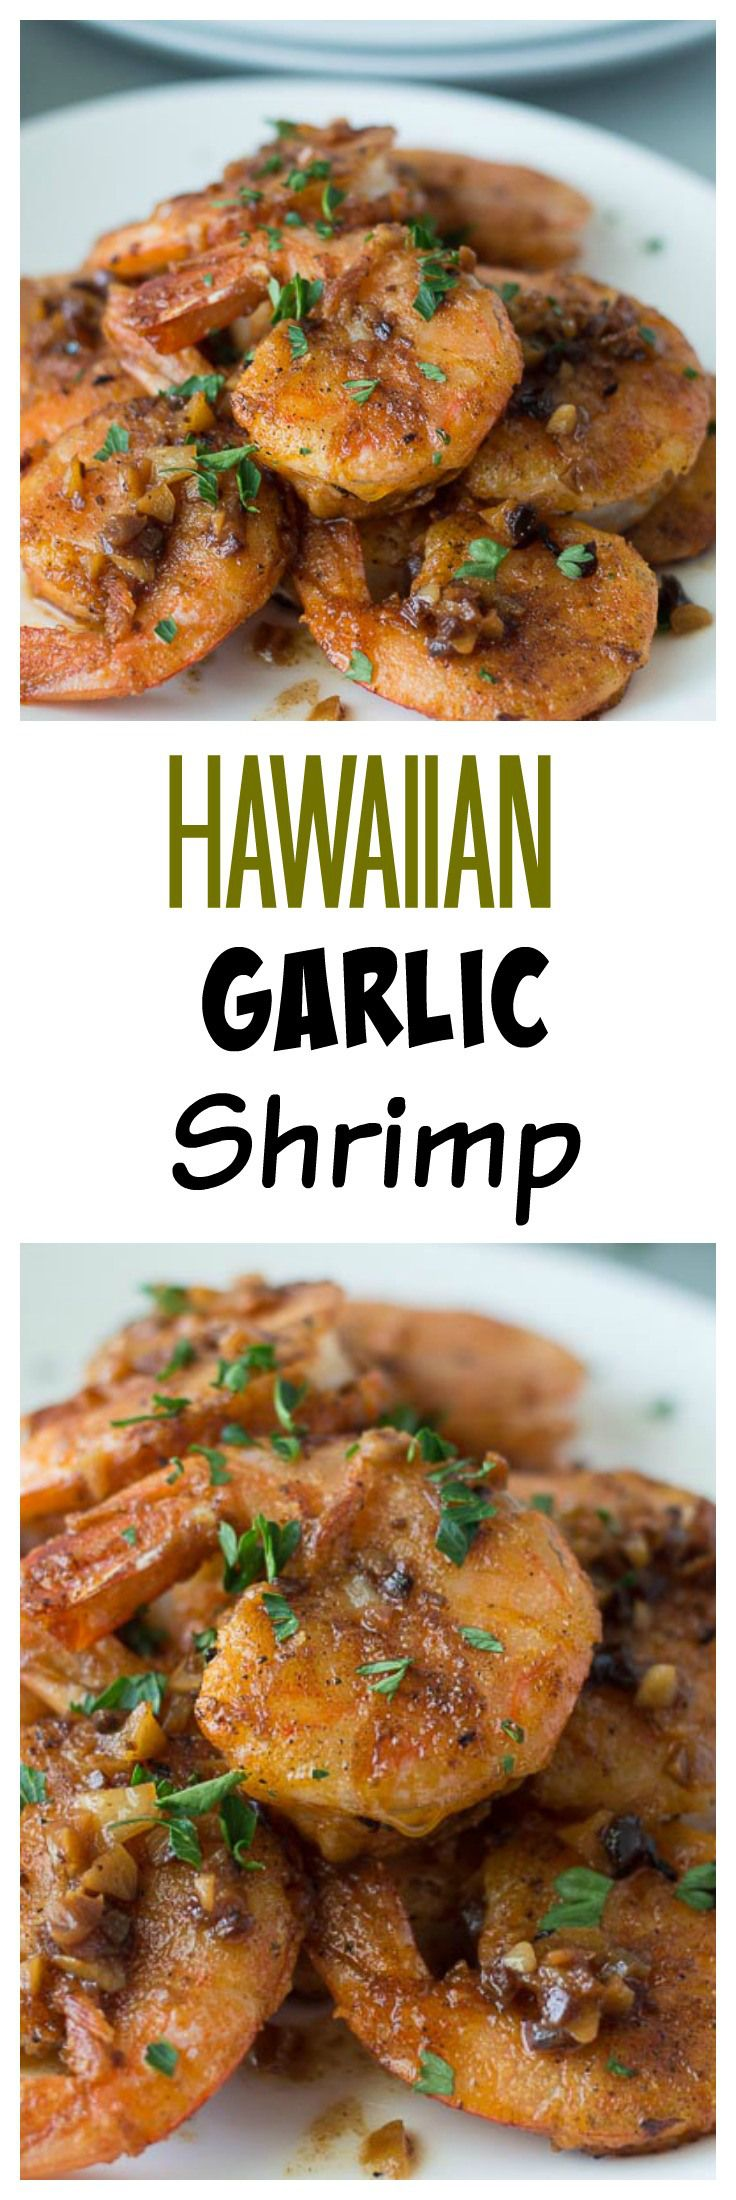 Hawaiian Garlic Shrimp Recipe.  This recipe is similar to the Hawaii Shrimp Truck Garlic Shrimp Plates you can get in Paradise!